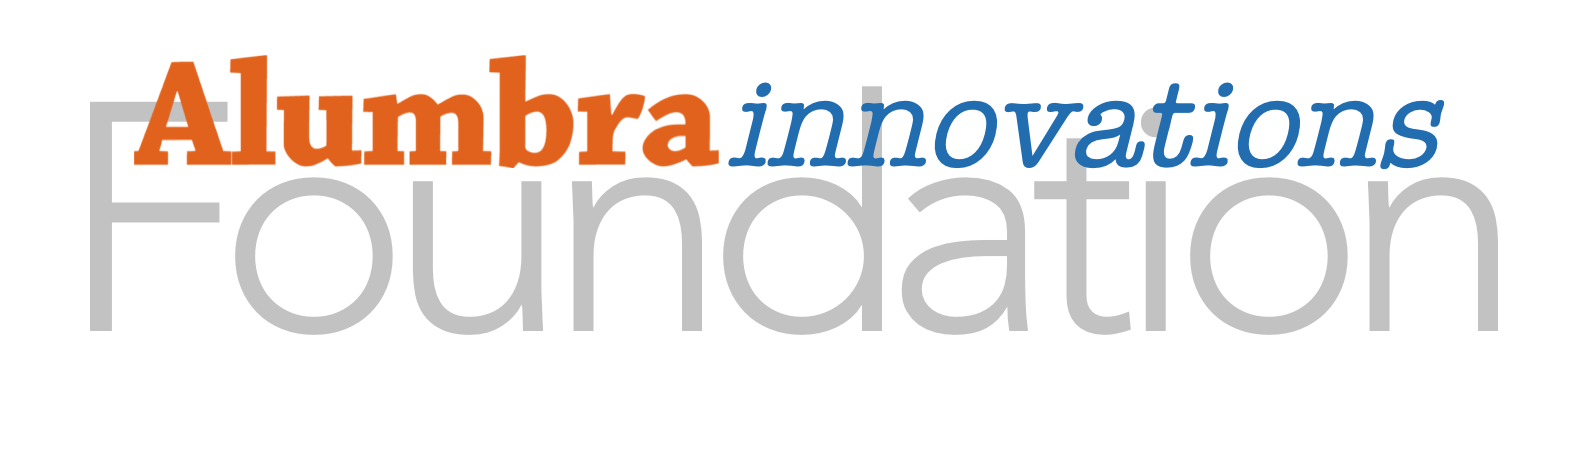 alumbra-innovations-foundation.png